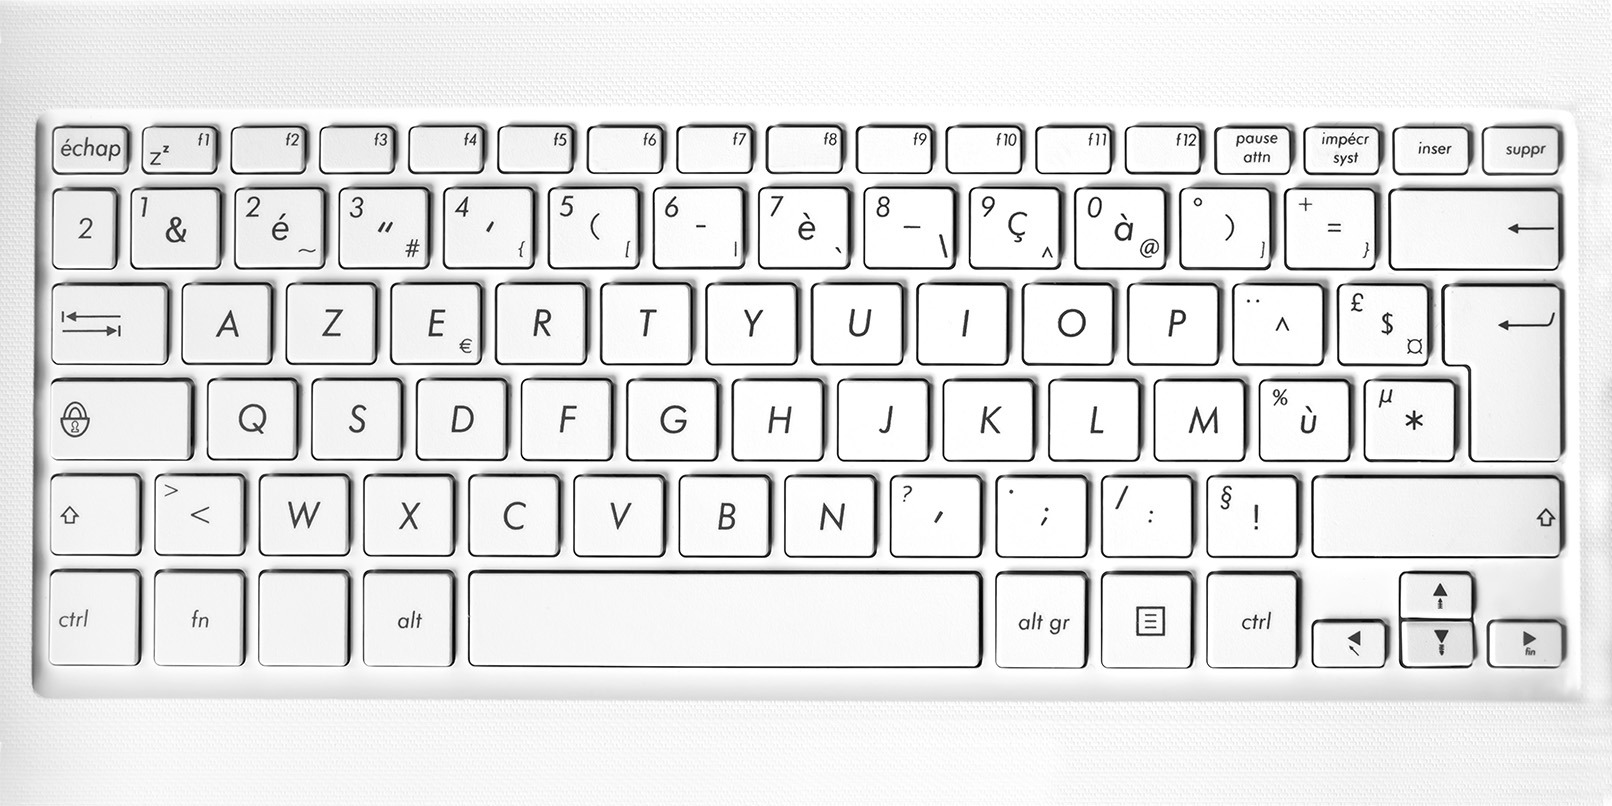 France wants to fix its difficult keyboard layout